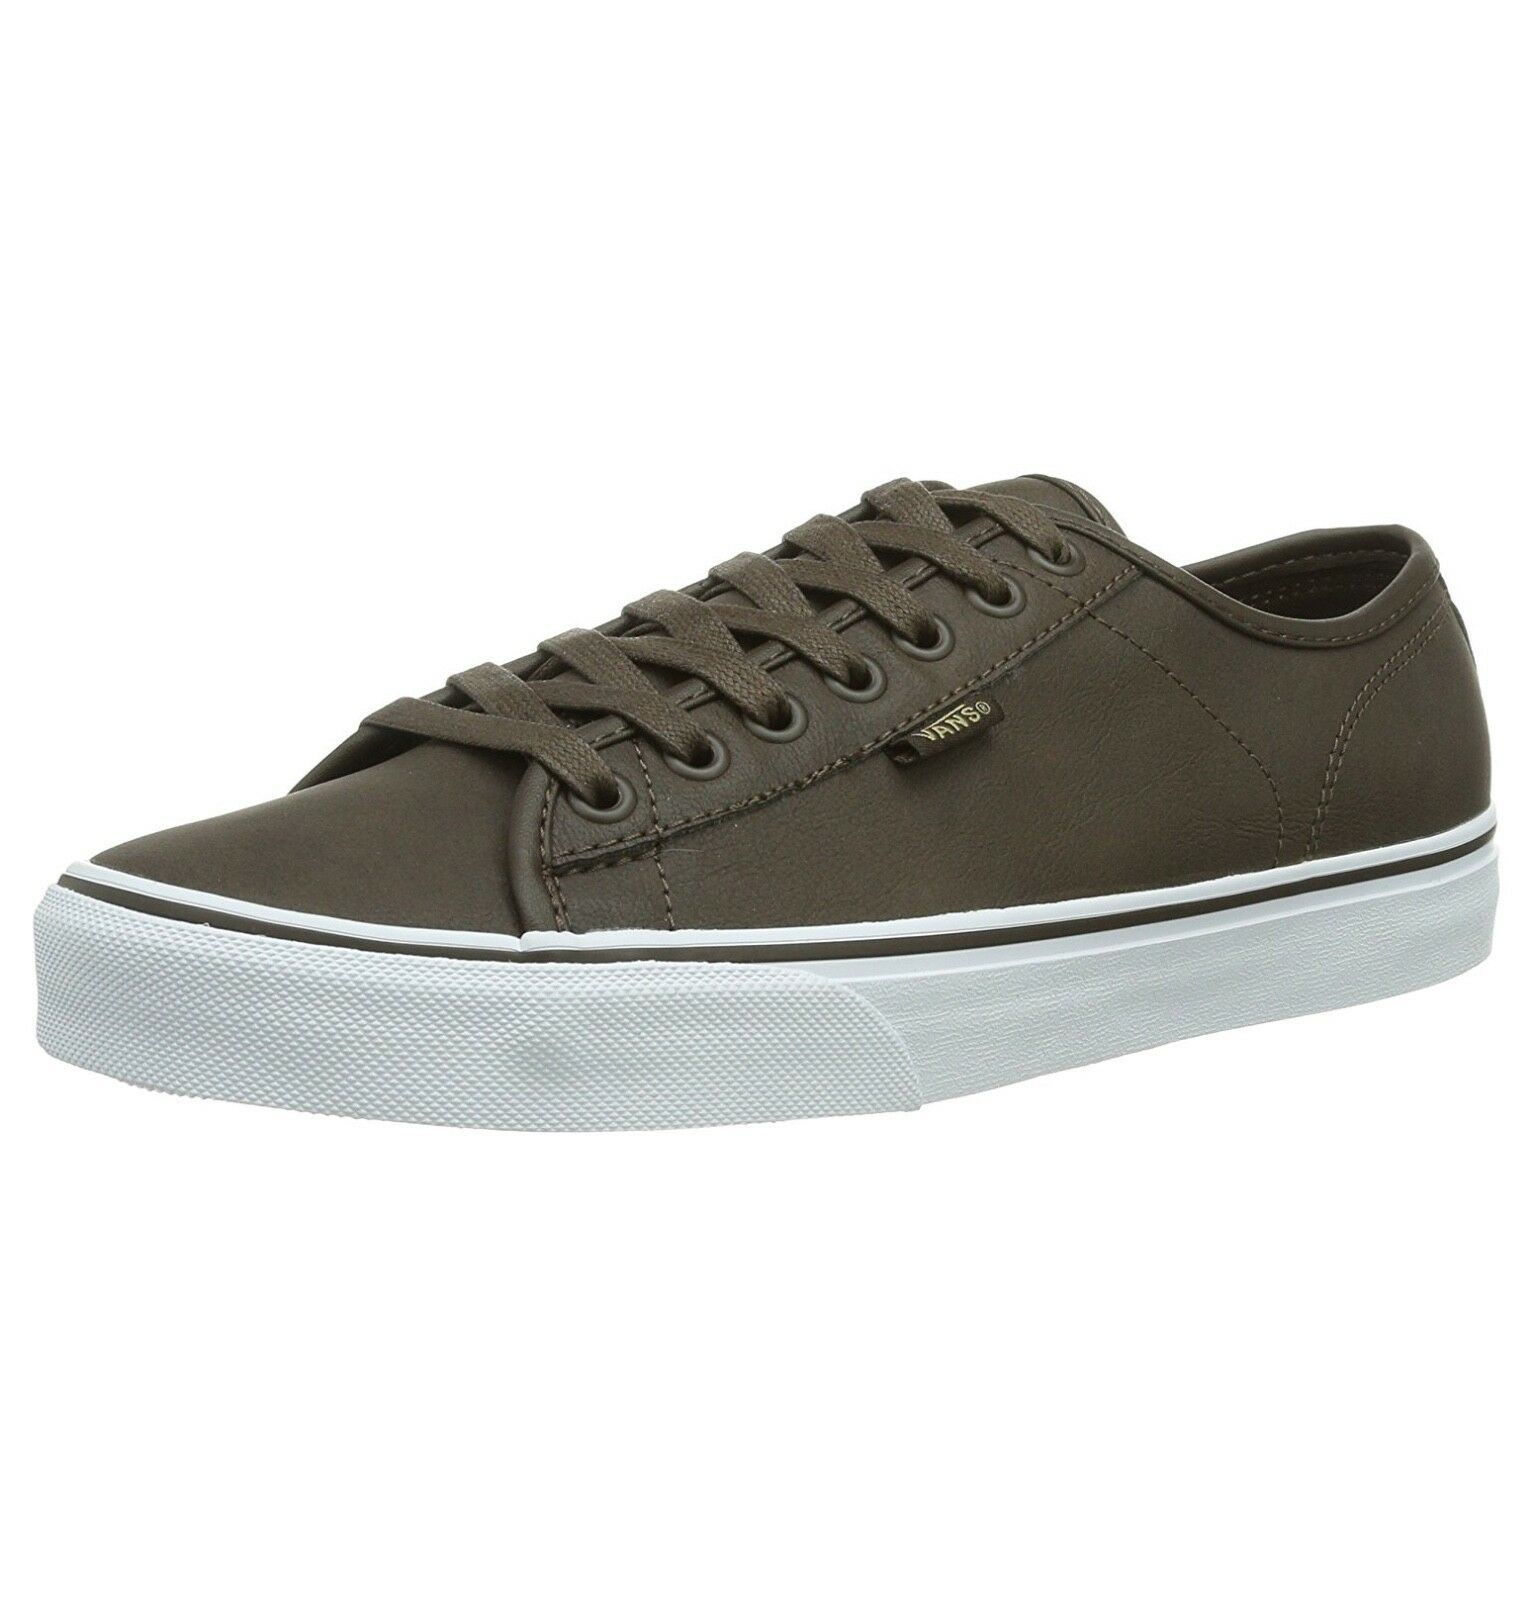 VANS Mens Ferris Low Leather Buck Skater Shoes Plimsolls Brown White Trainers